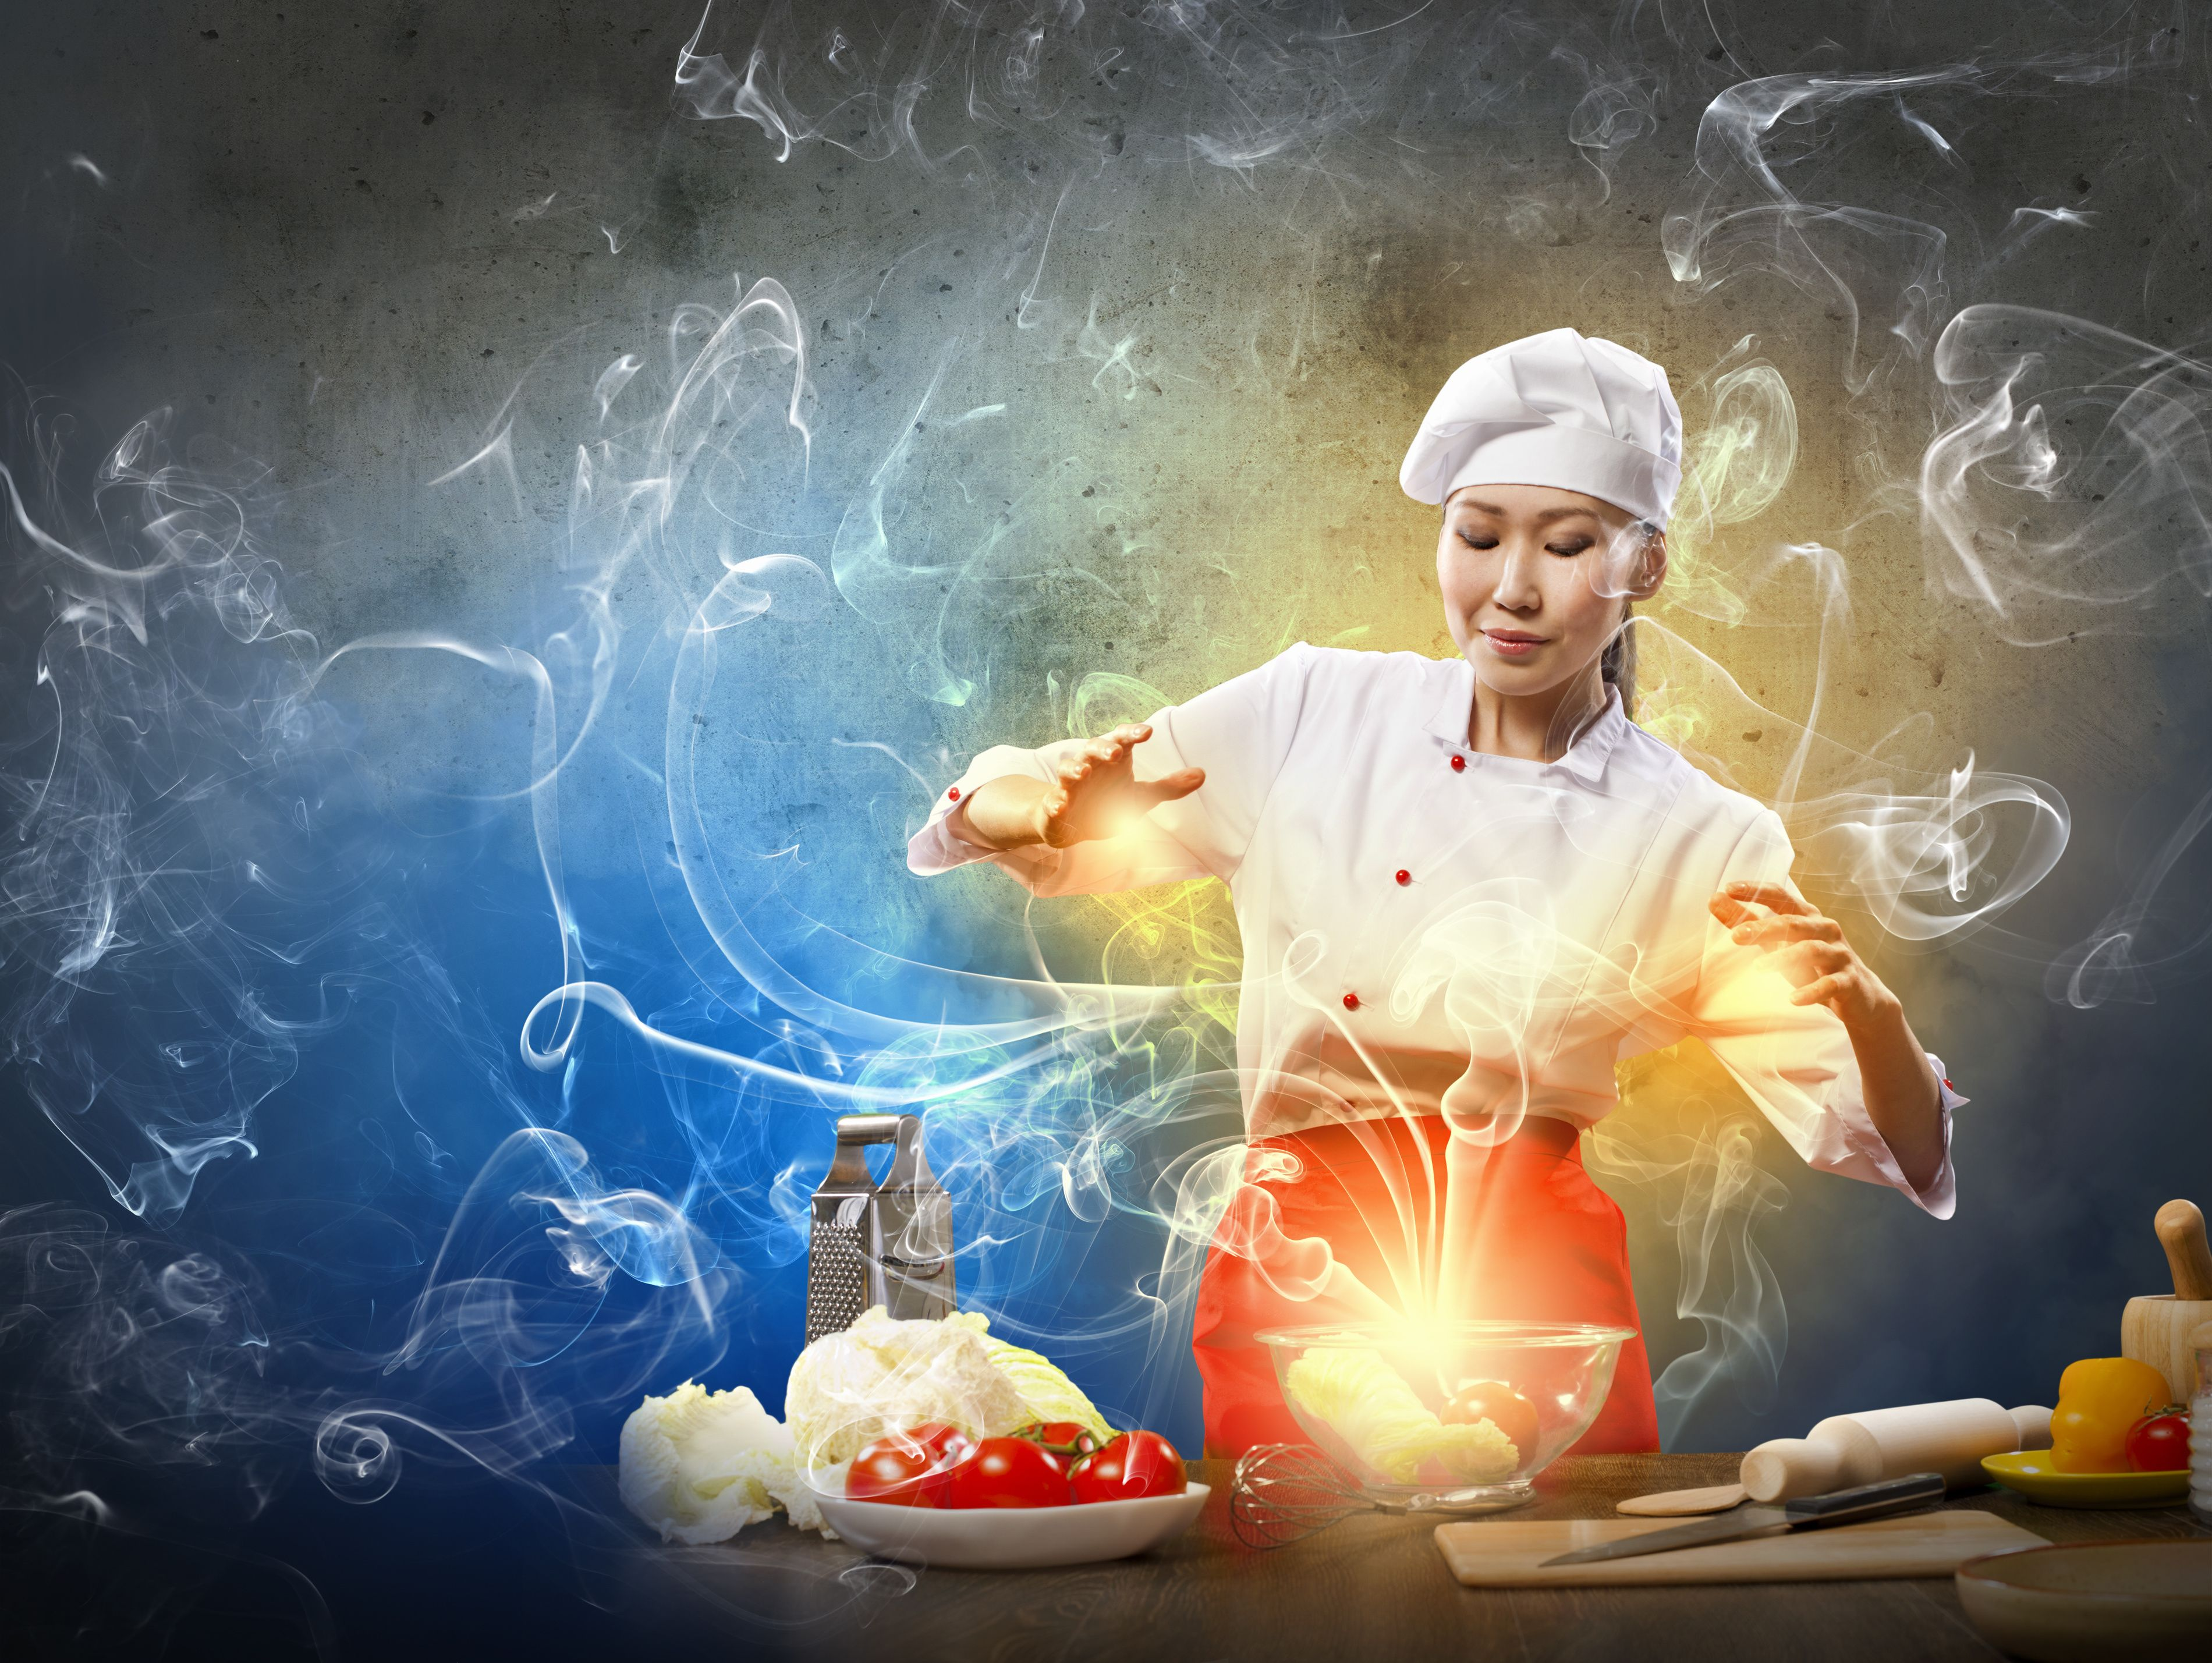 wallpaper creative chef girl